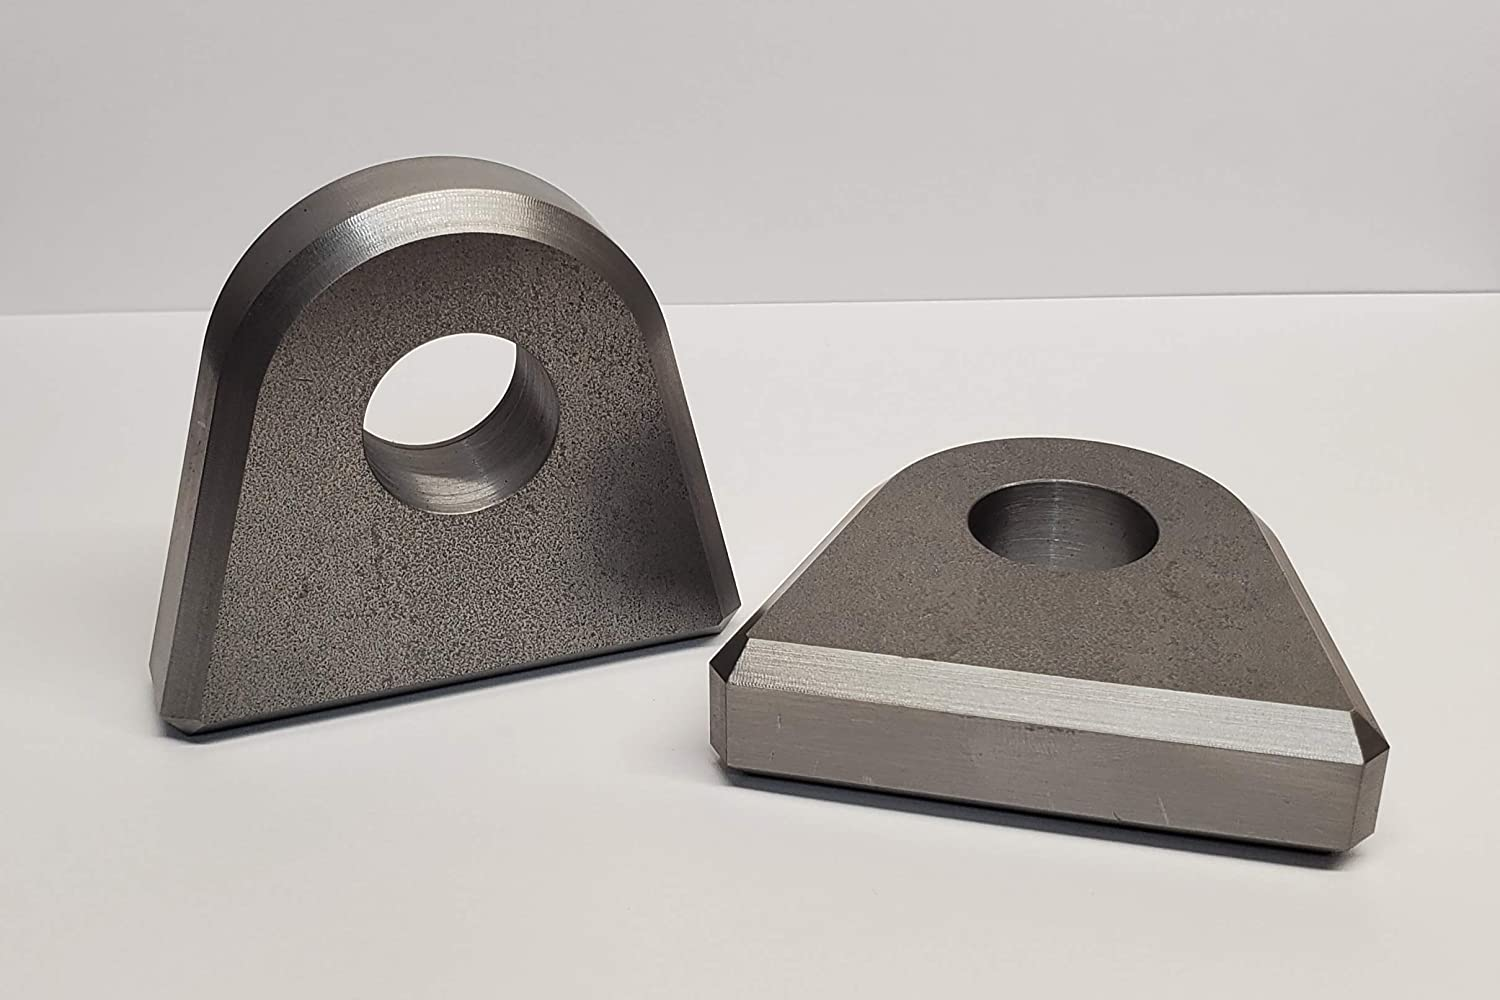 TCS Mounts Weld on Shackle Clevis Manufacturer regenerated product 3 .750